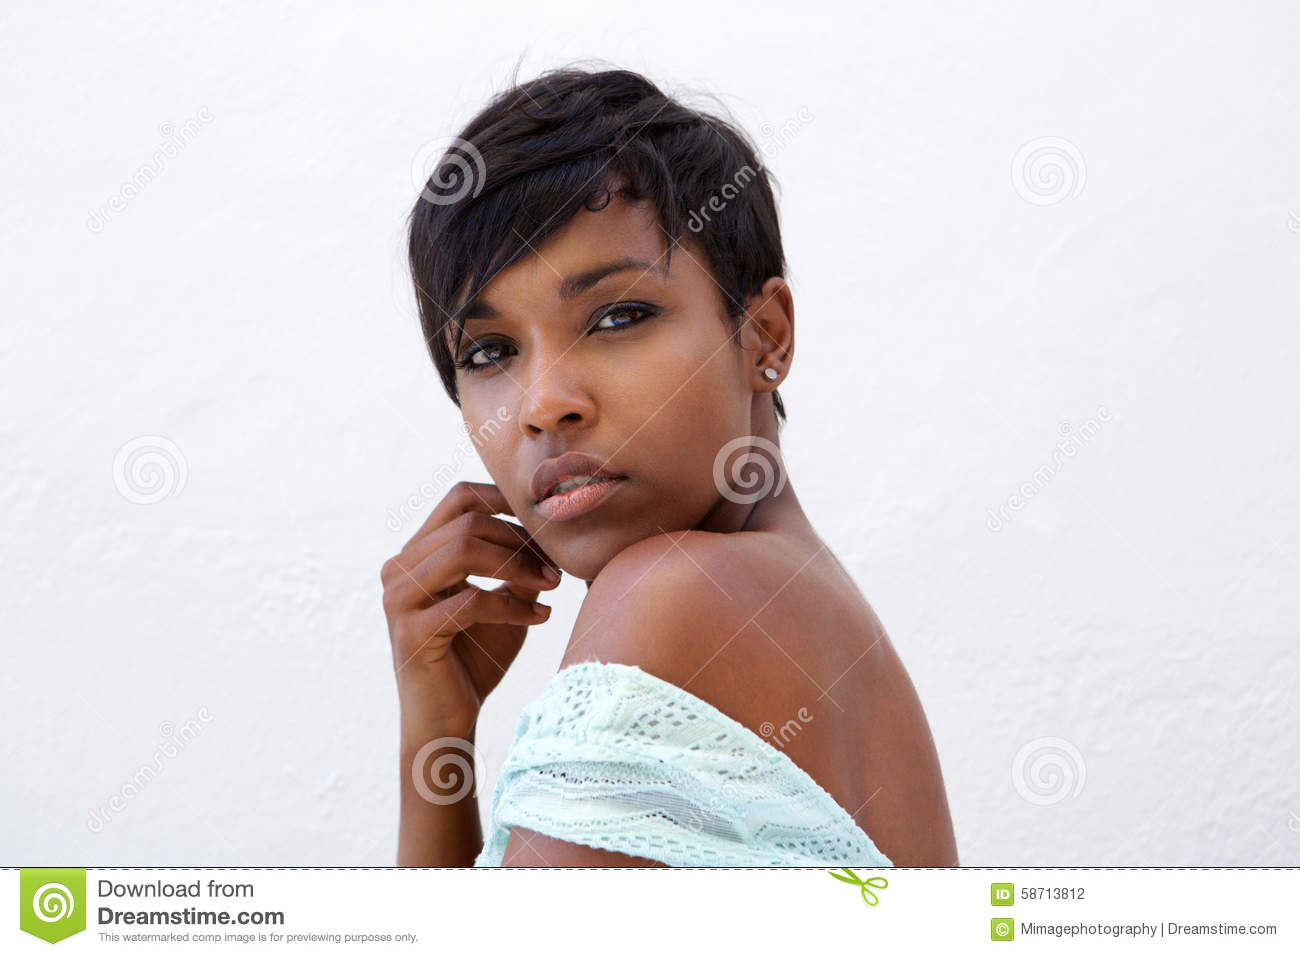 Download Close Up Beautiful African American Fashion Model With Short Hair Stock Photo - Image of eyes, beautiful: 58713812